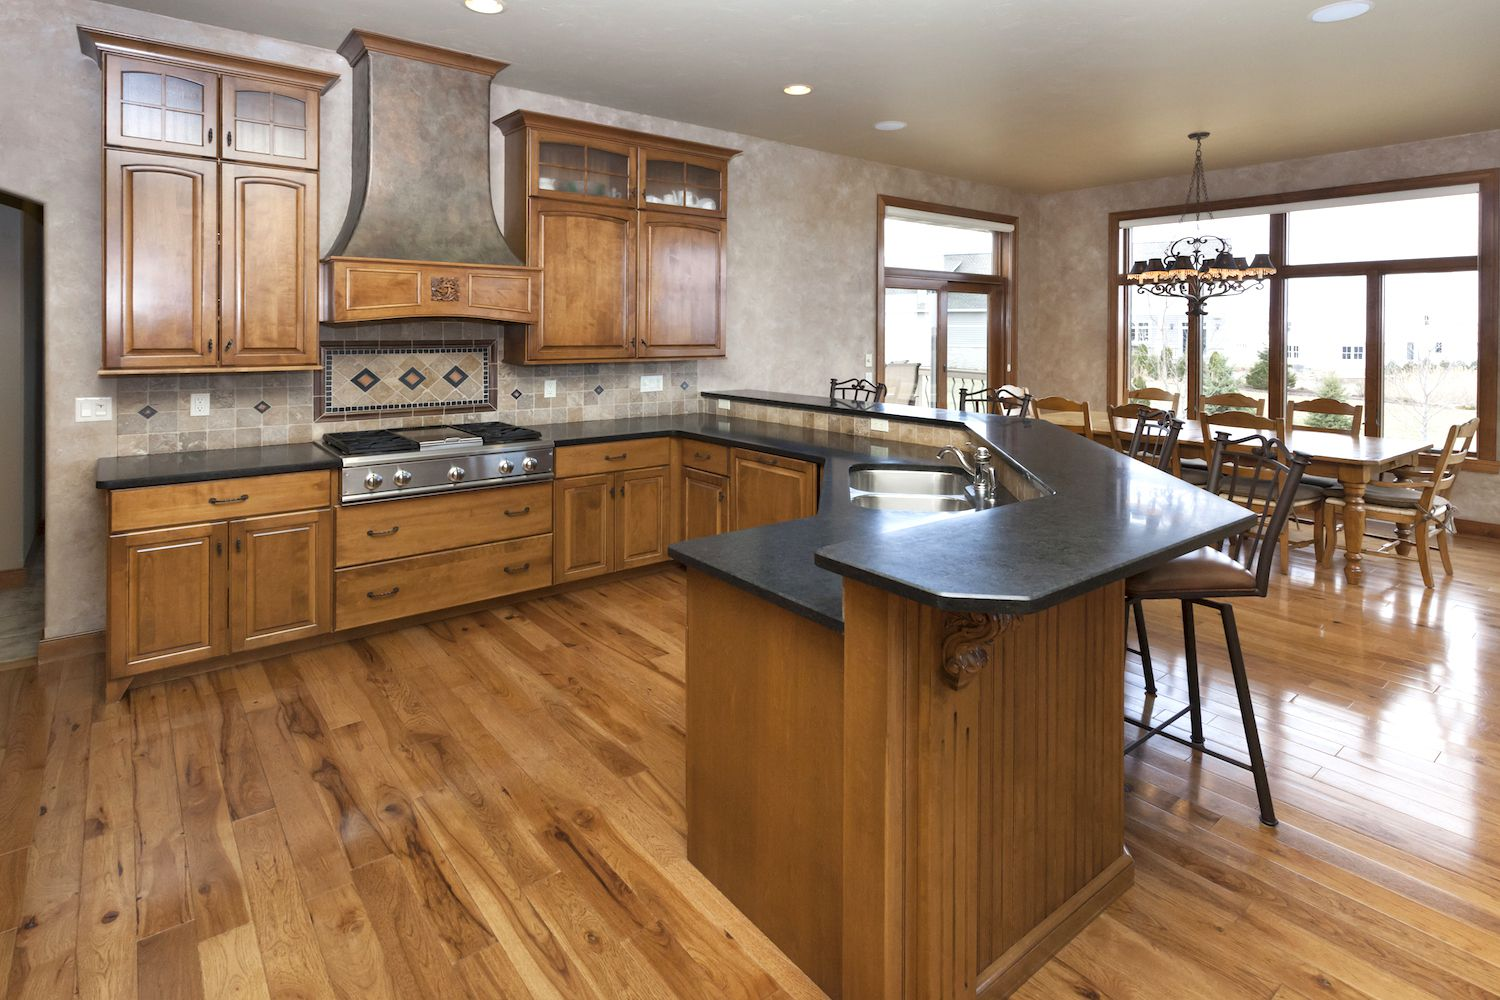 How To Choose The Best Colors For Granite Countertops